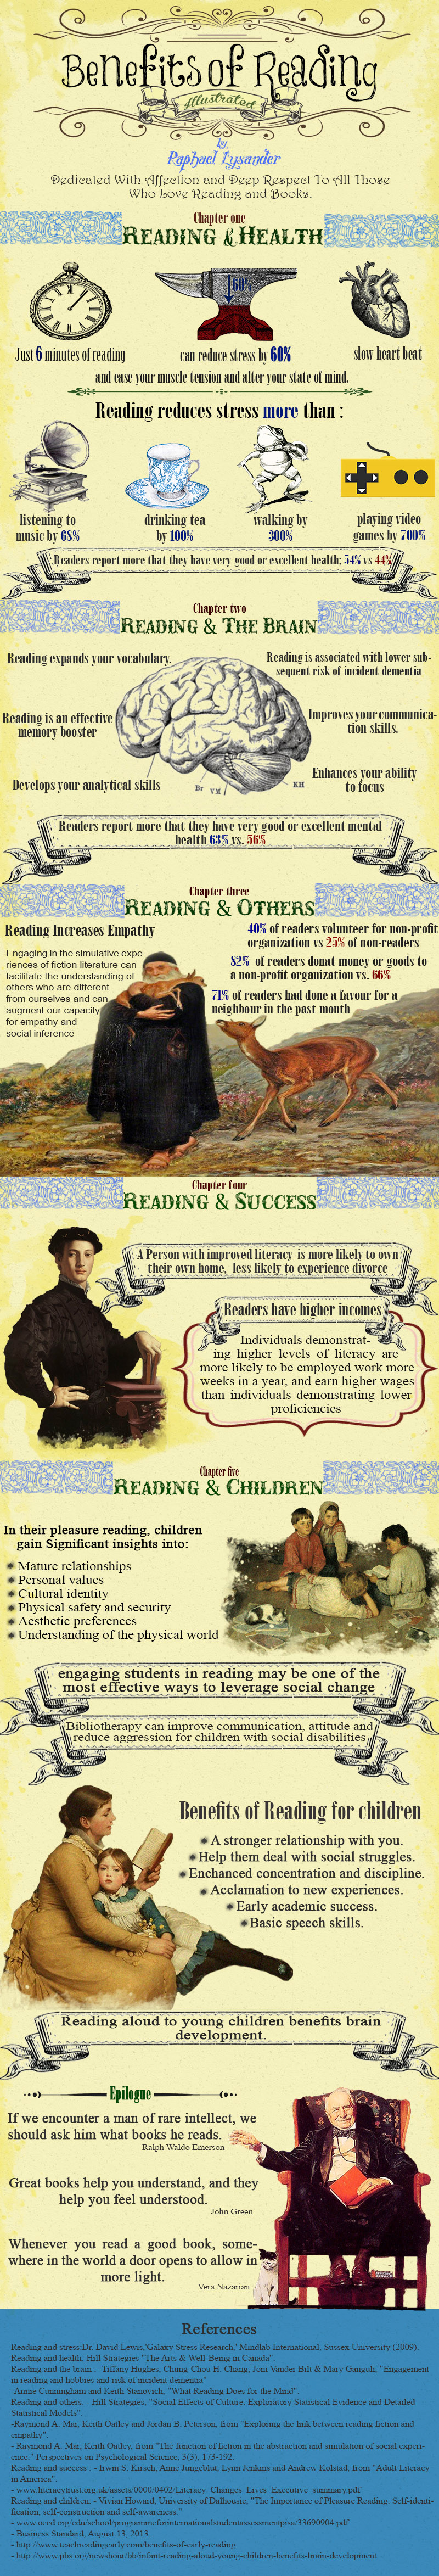 Benefits of Readings